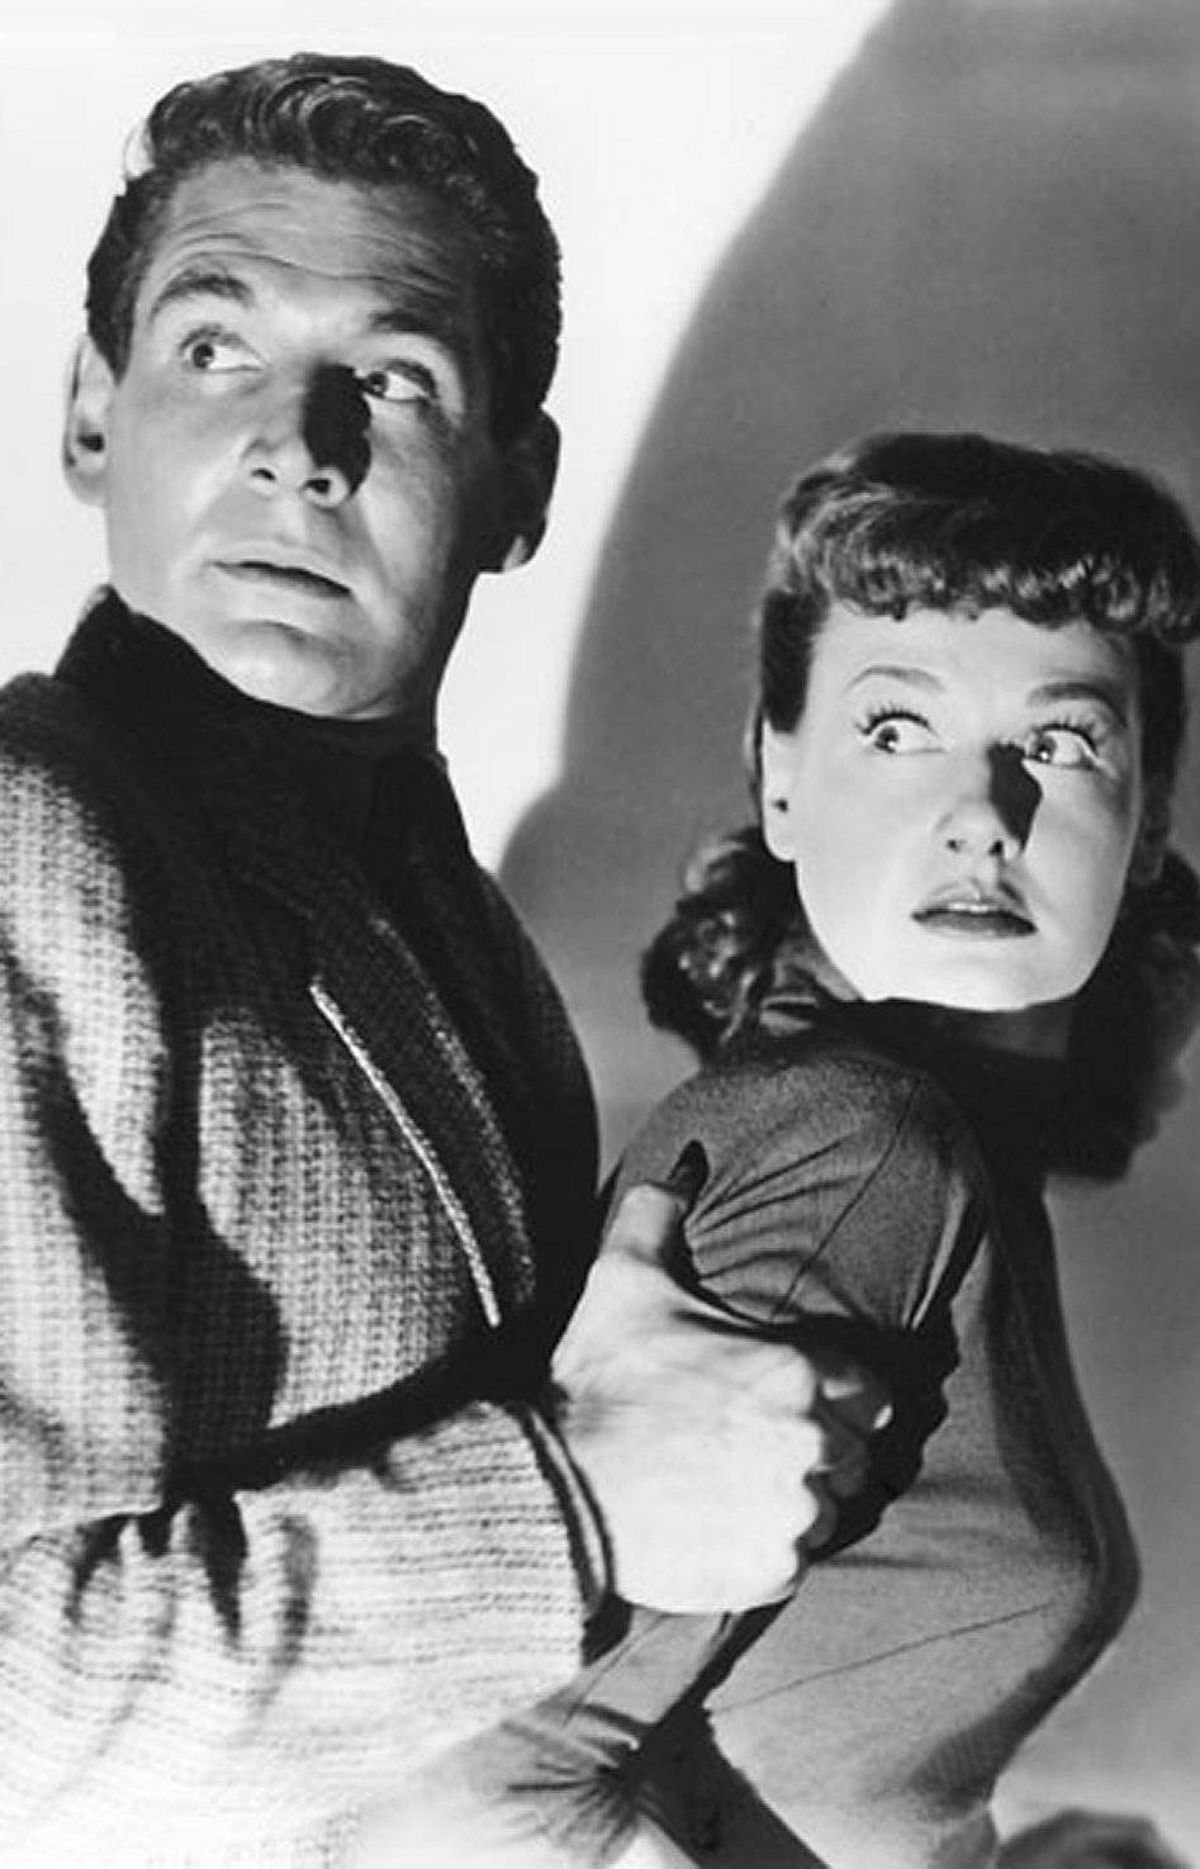 MOVIE War of the Worlds AMC, 10 p.m. ET; 7 p.m. PT Although this 1953 film had a fraction of the budget of Steven Spielberg's 2005 remake, most H.G. Wells purists prefer the original. Adhering fairly closely to Wells's novel, the story casts Gene Barry as the scientist Dr. Clayton Forrester, who races to the scene when a large meteor crashes outside a small California town. While Dr. Forrester tries to take the scientific approach, the military begin dropping atomic bombs – to no avail – and pretty soon our little green planet is overrun with huge mechanical aliens shooting death rays. One of the first science-fiction films to win an Oscar (for special effects, naturally).